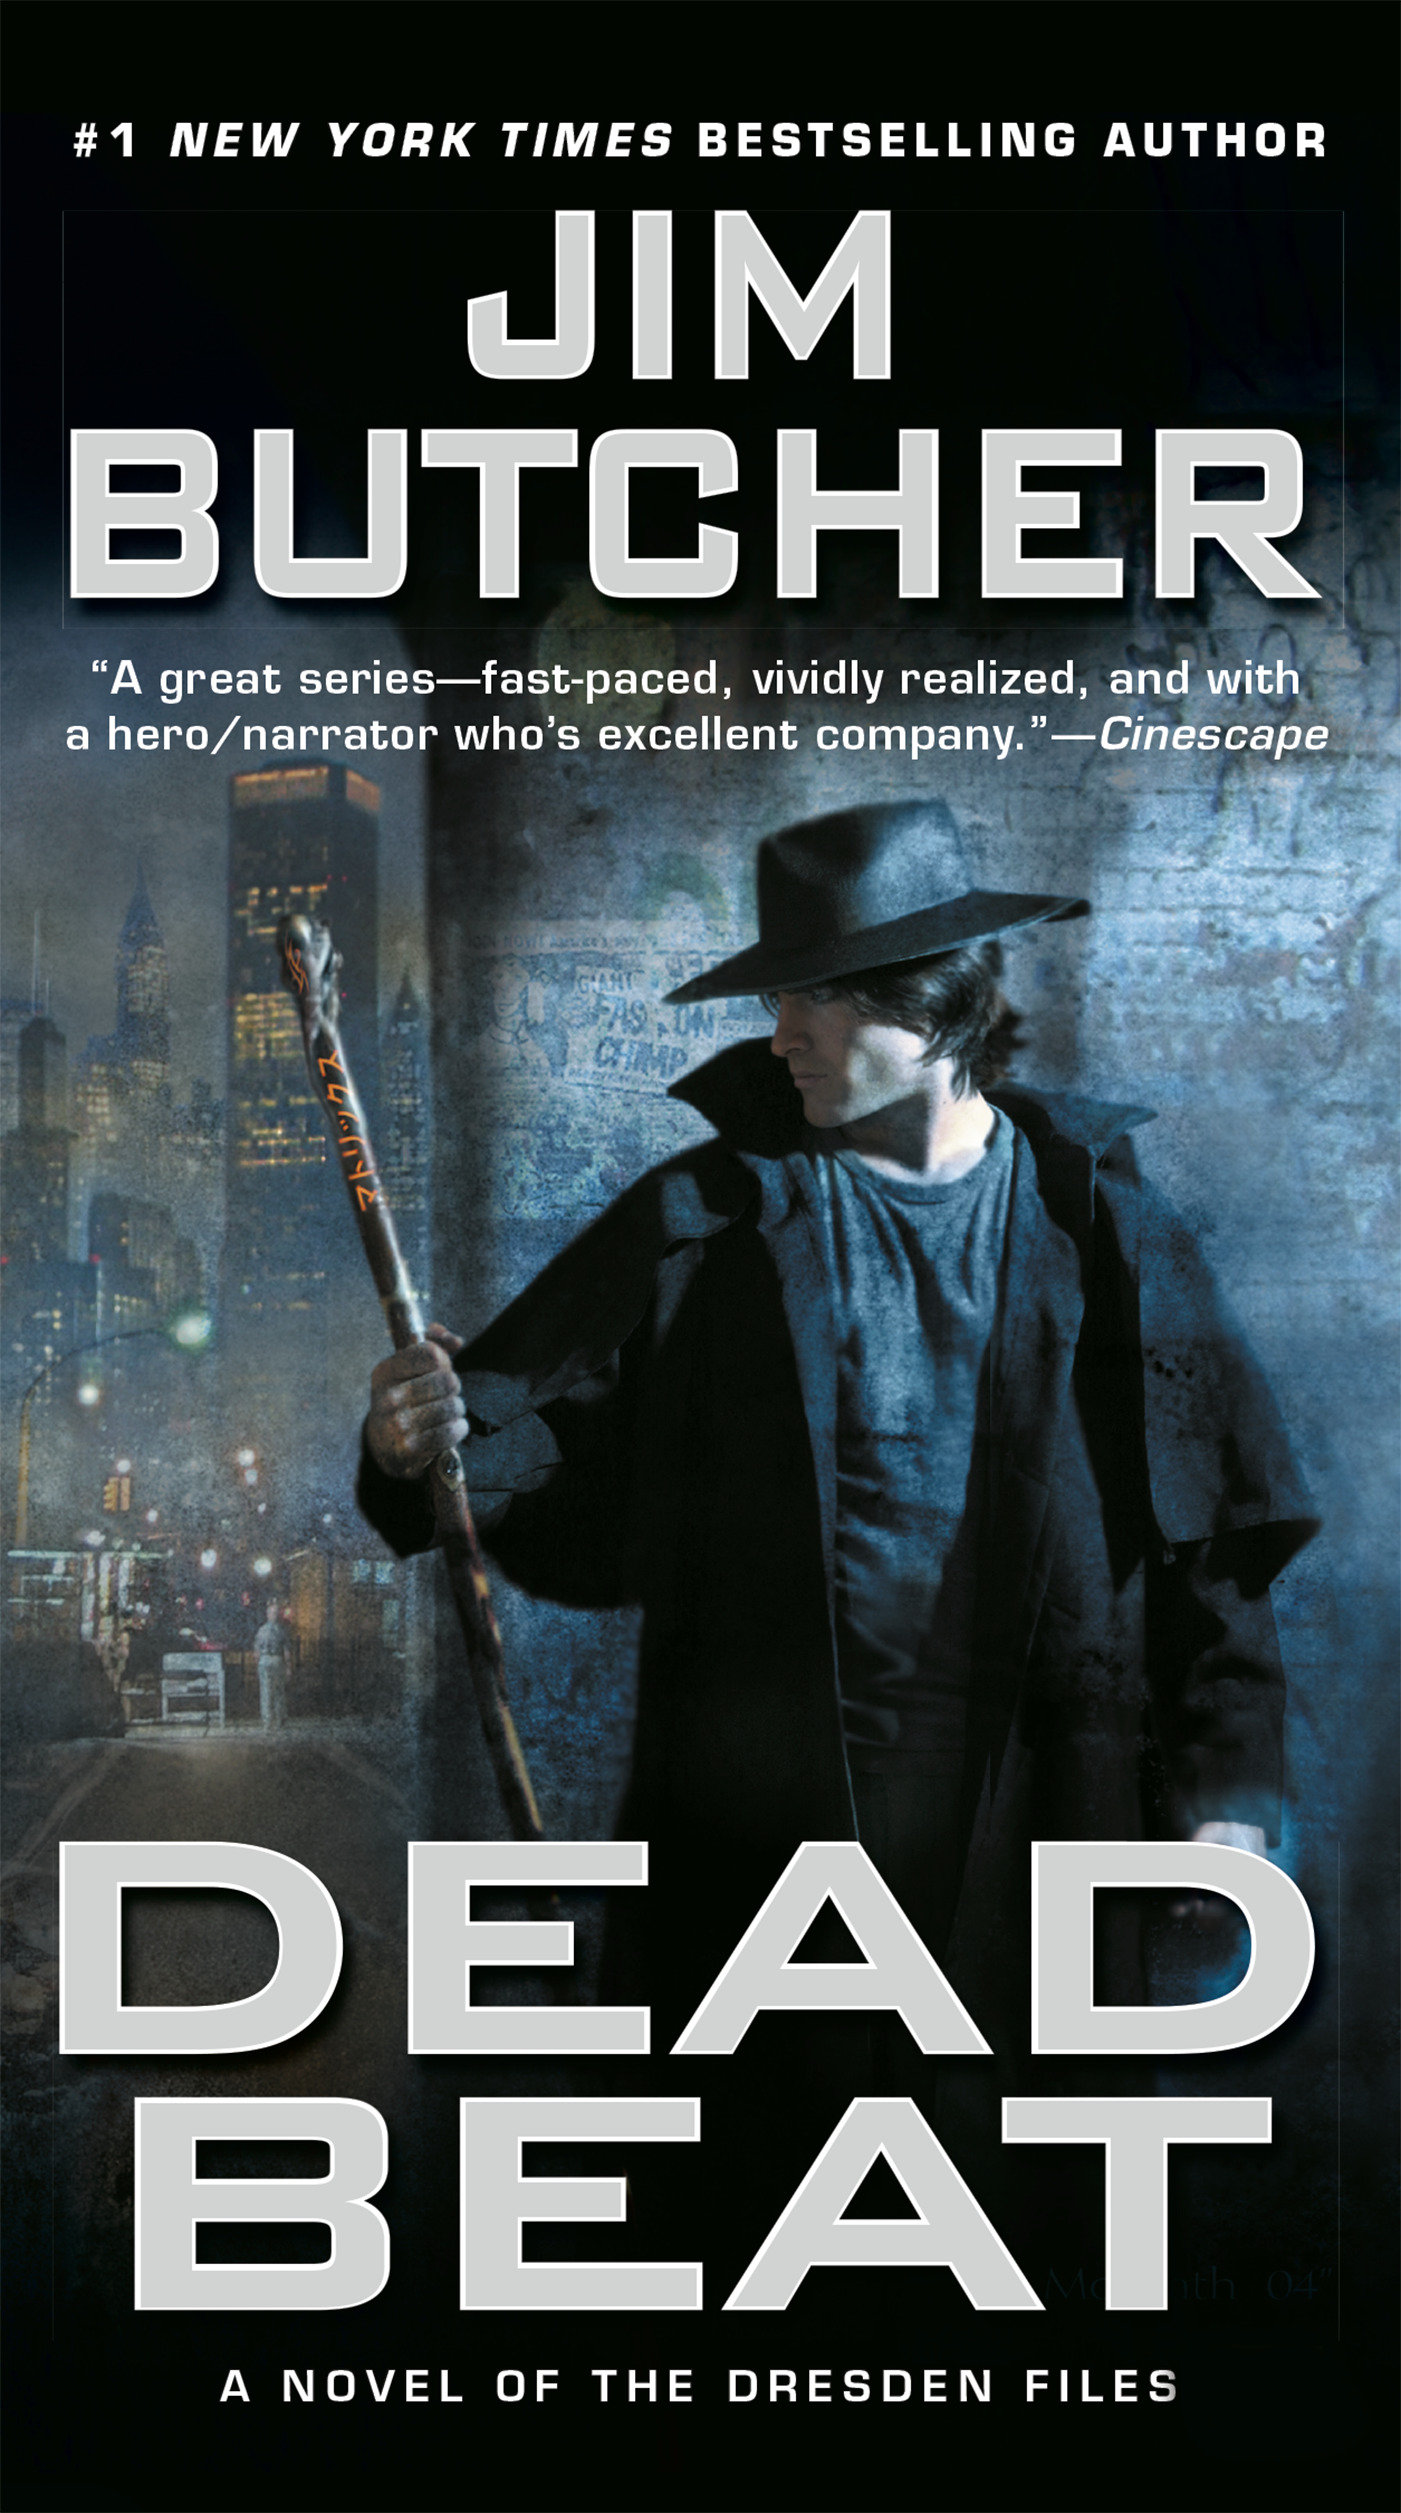 Dead beat cover image